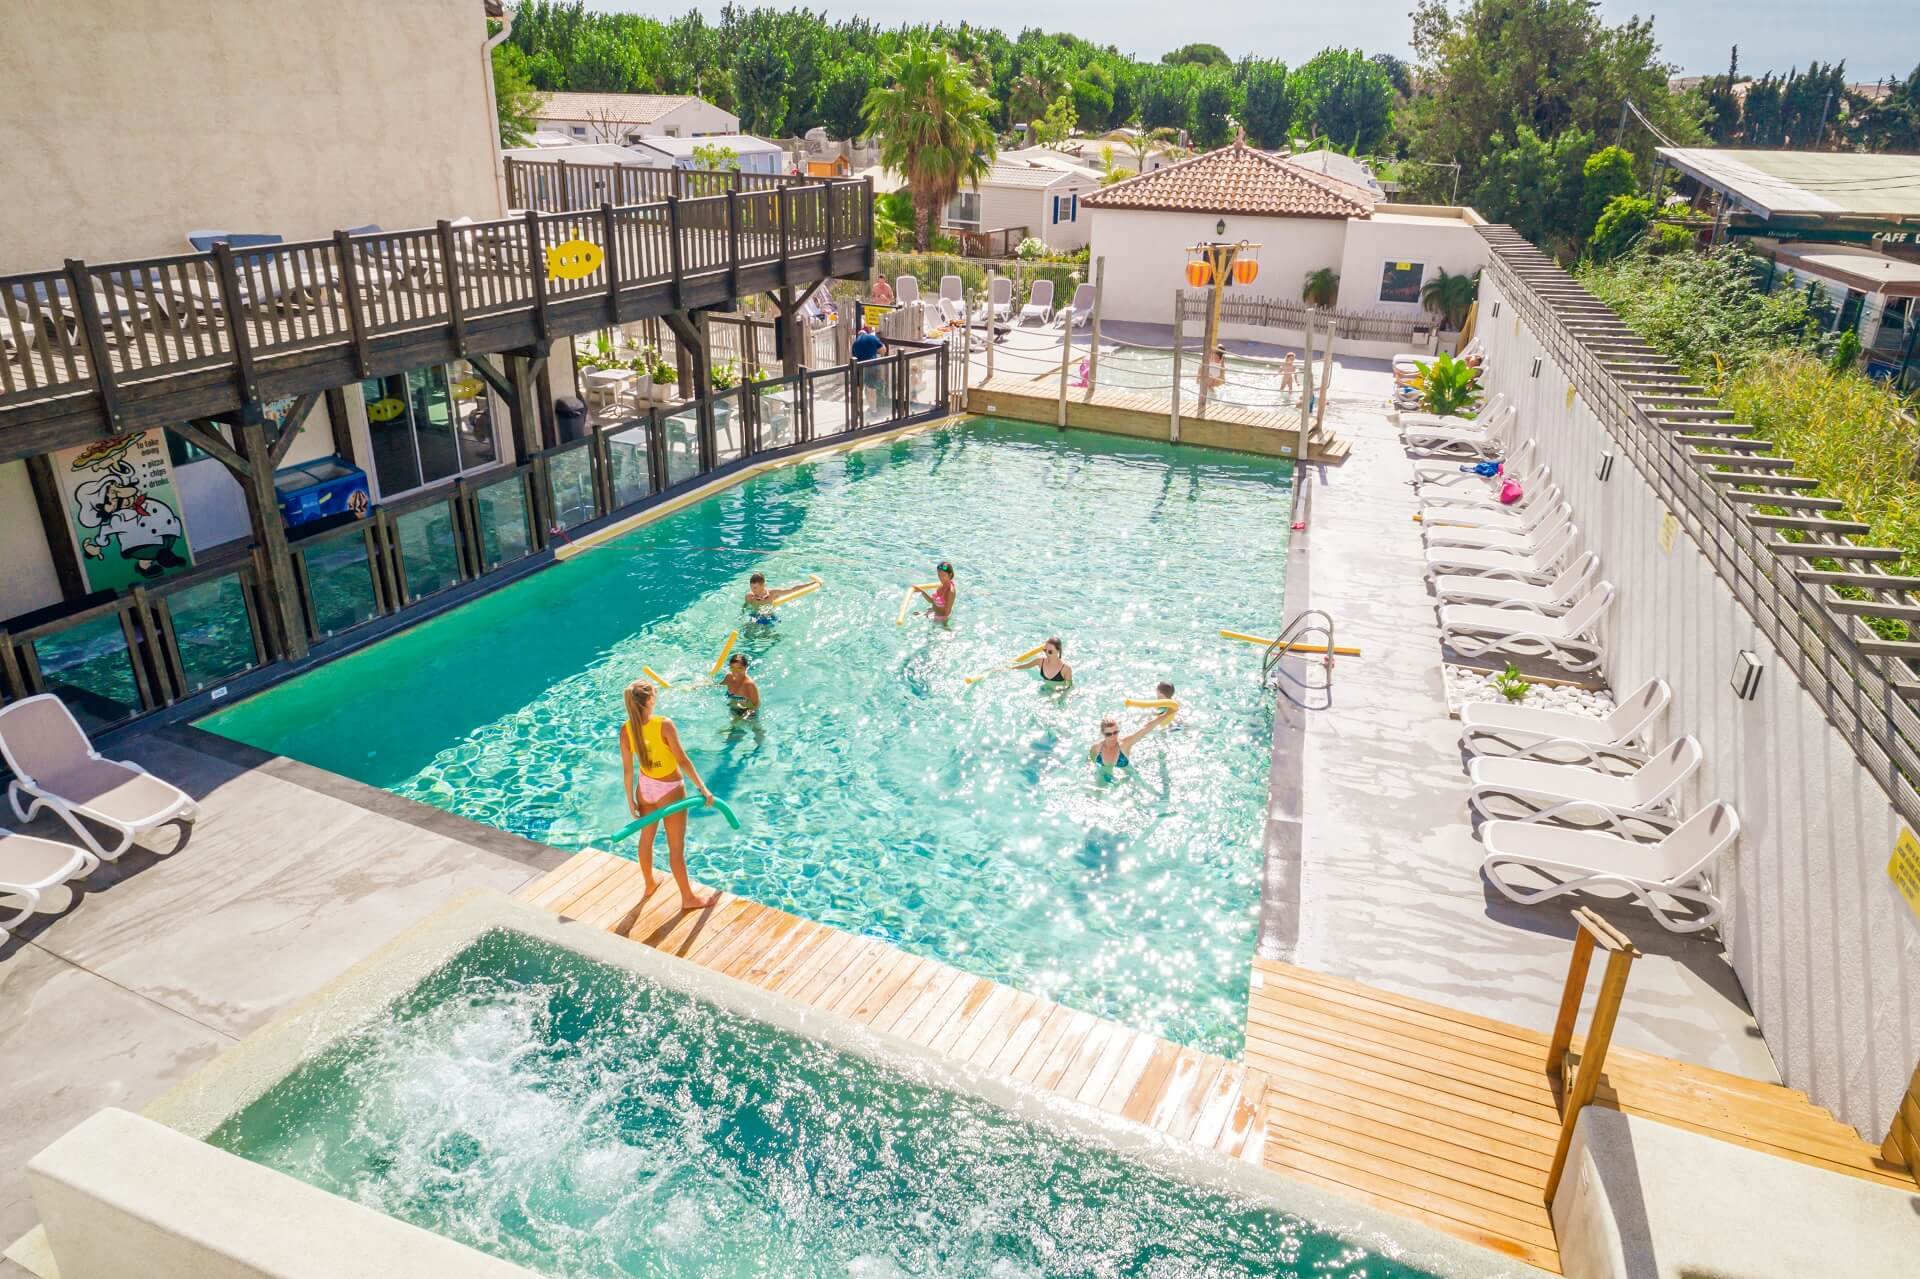 Offres Camping-caristes camping Valras plage